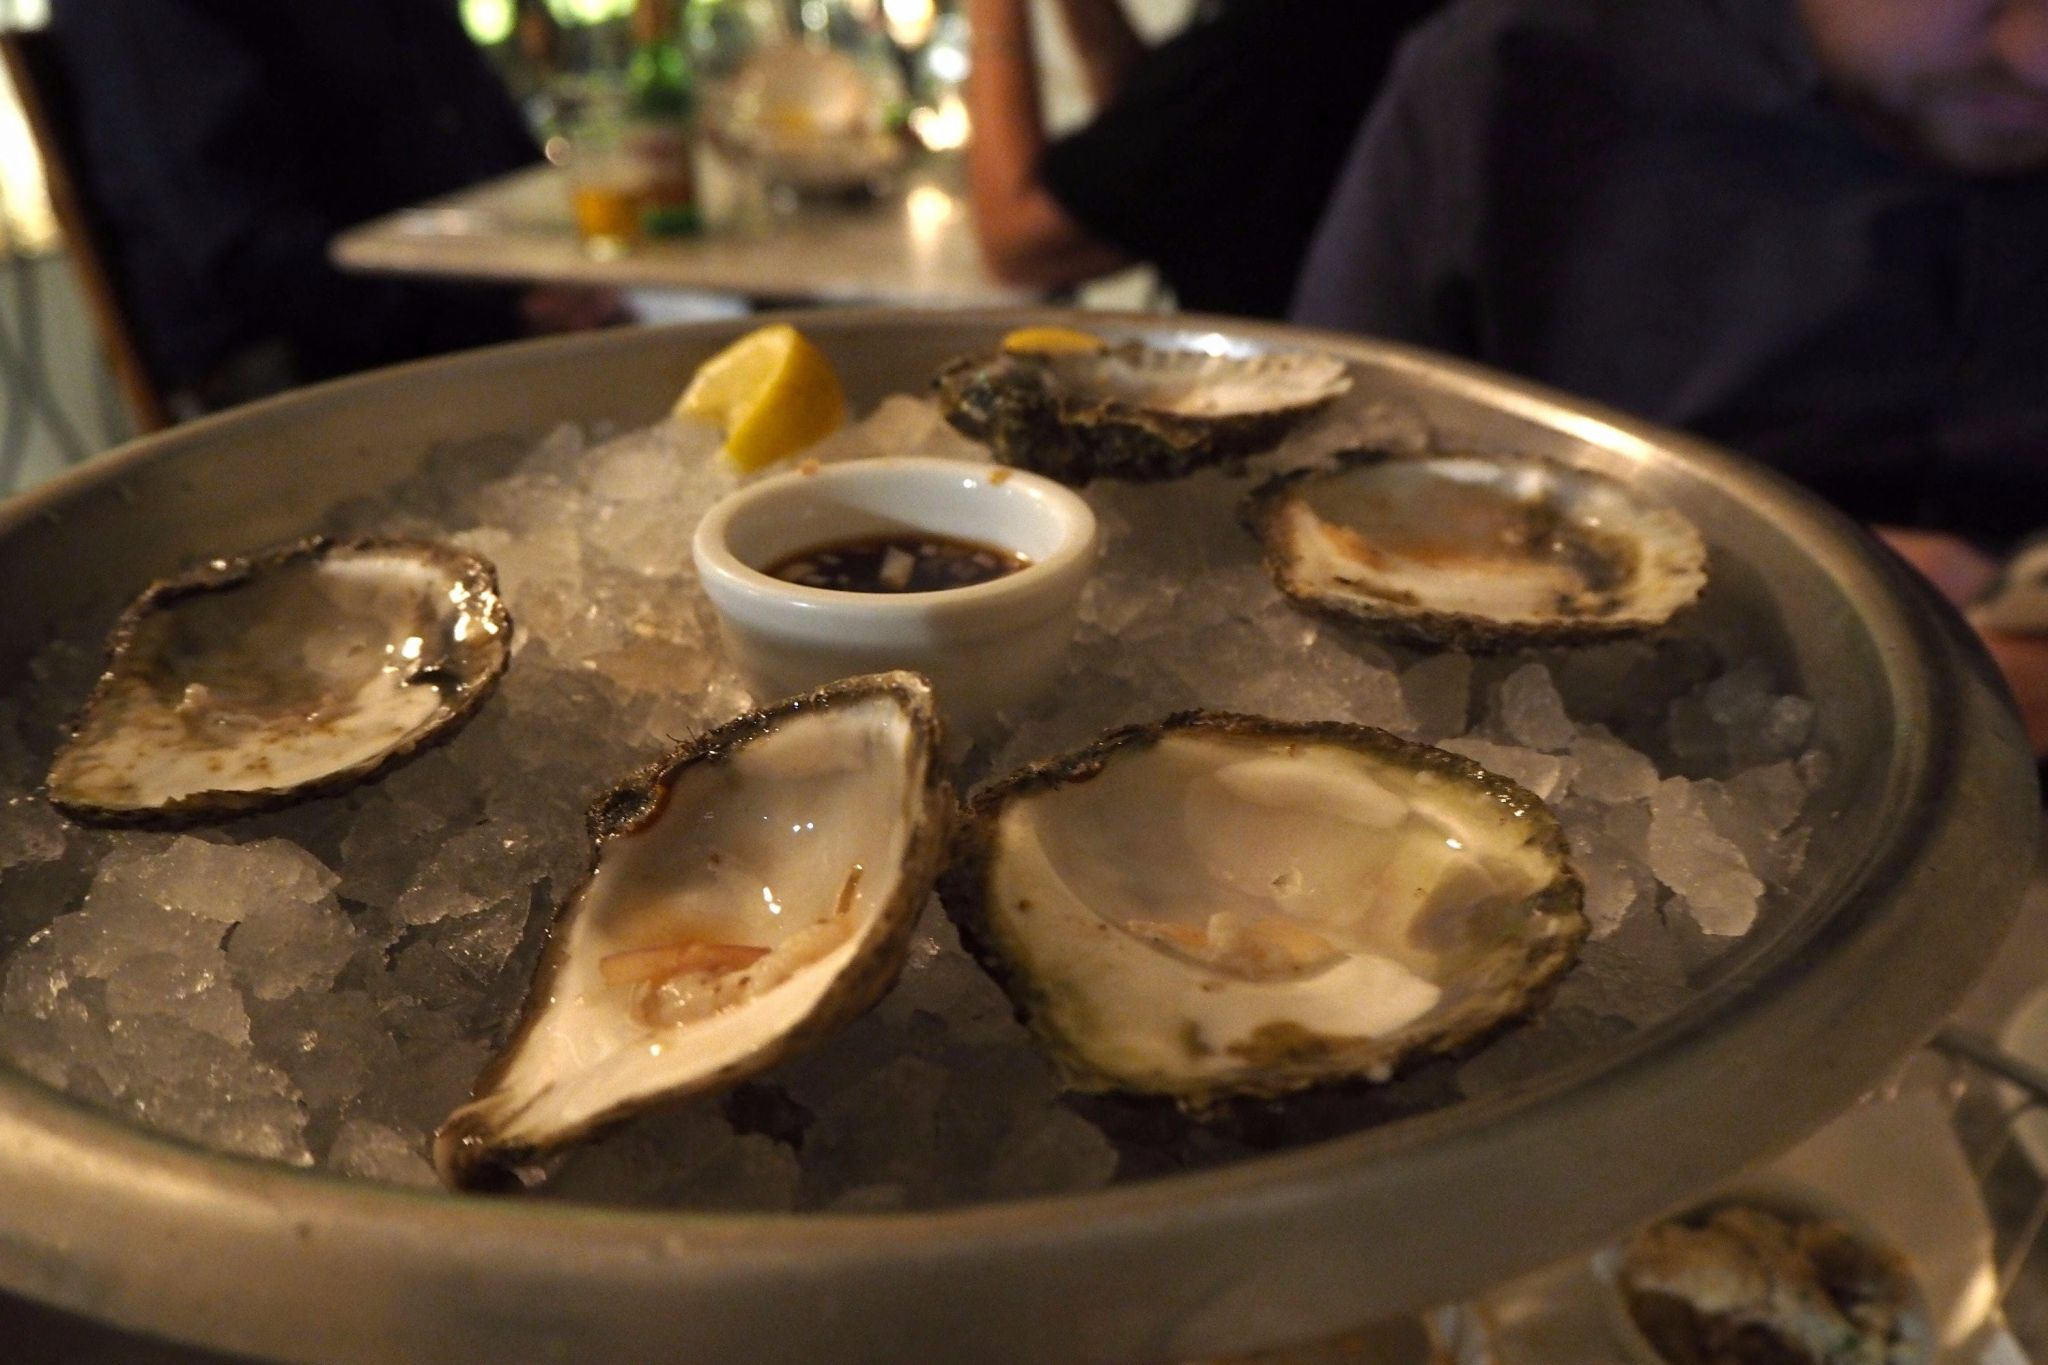 Oysters close up